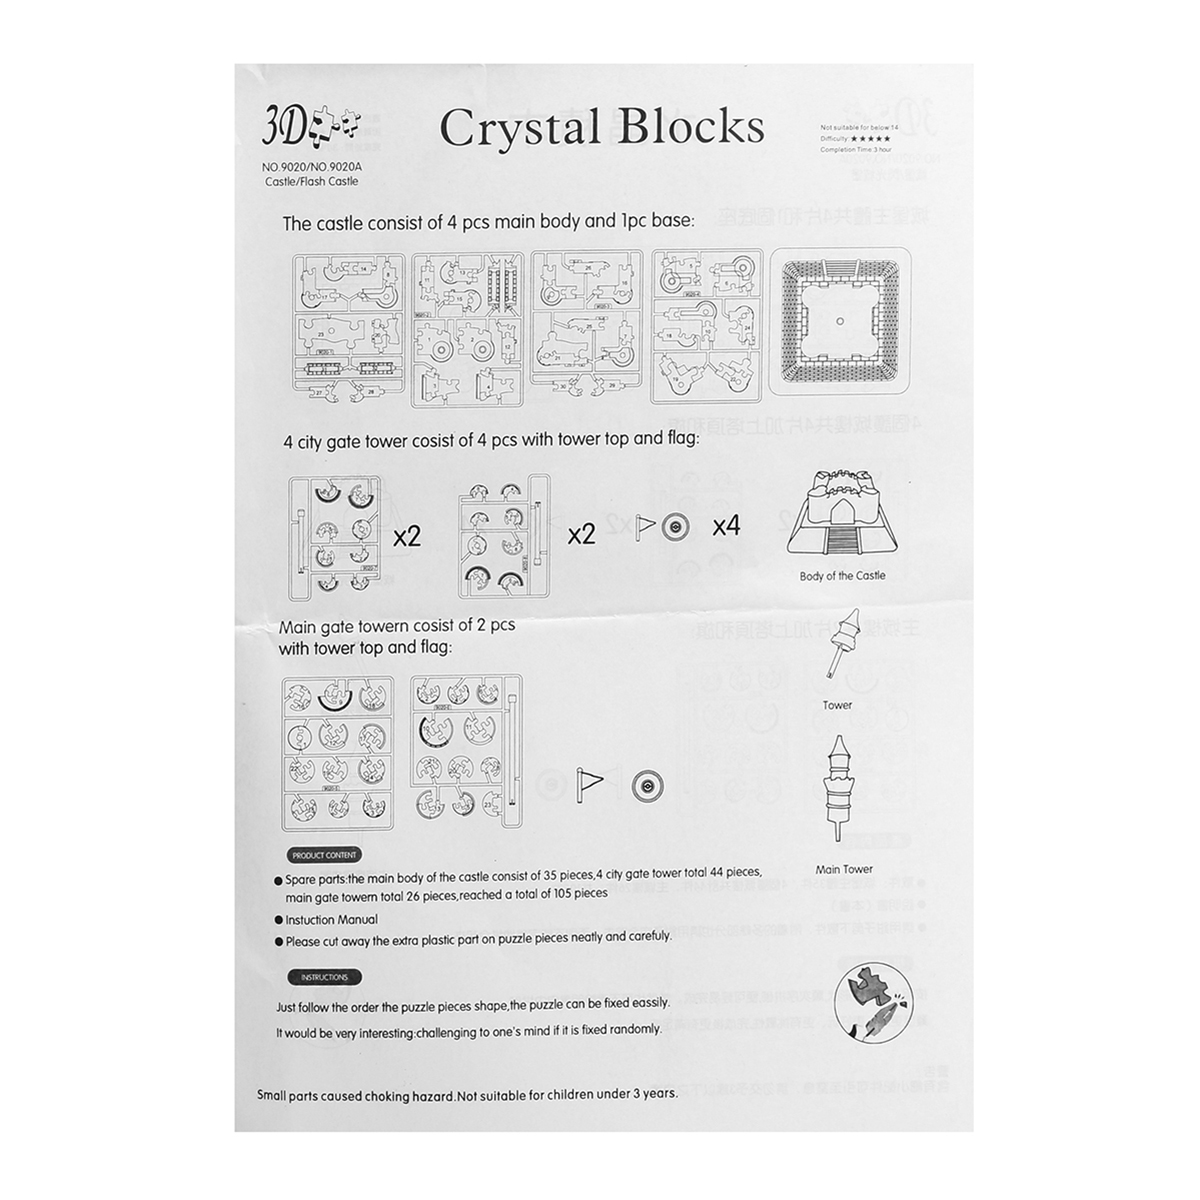 original 3d crystal puzzle ship instructions